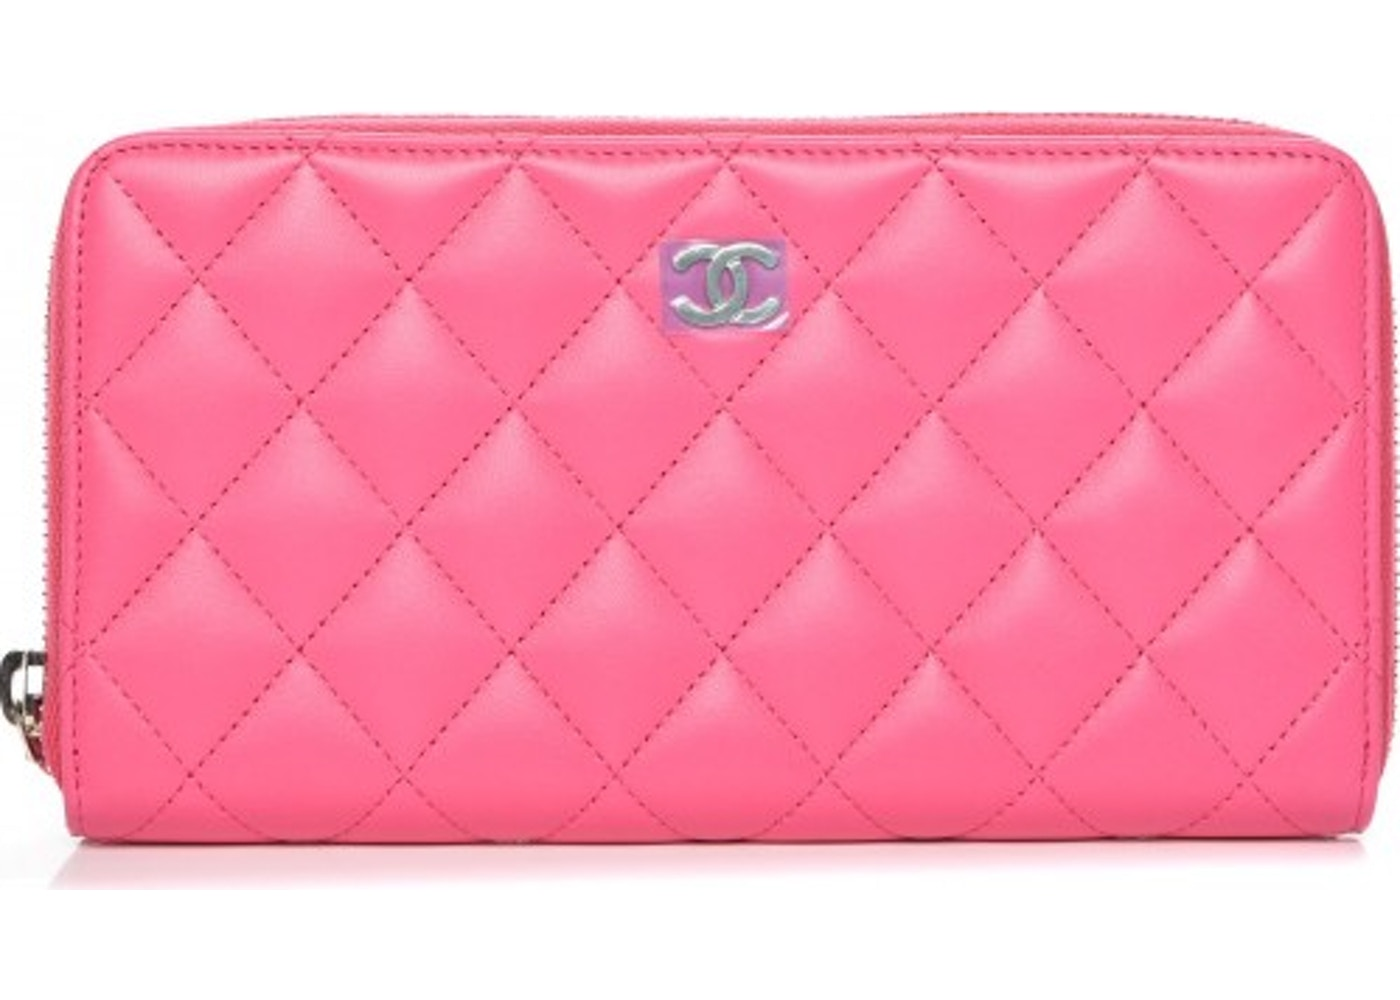 87a8c20651b9 Chanel Gusset Zip Around Wallet Quilted Diamond Pink. Quilted Diamond Pink